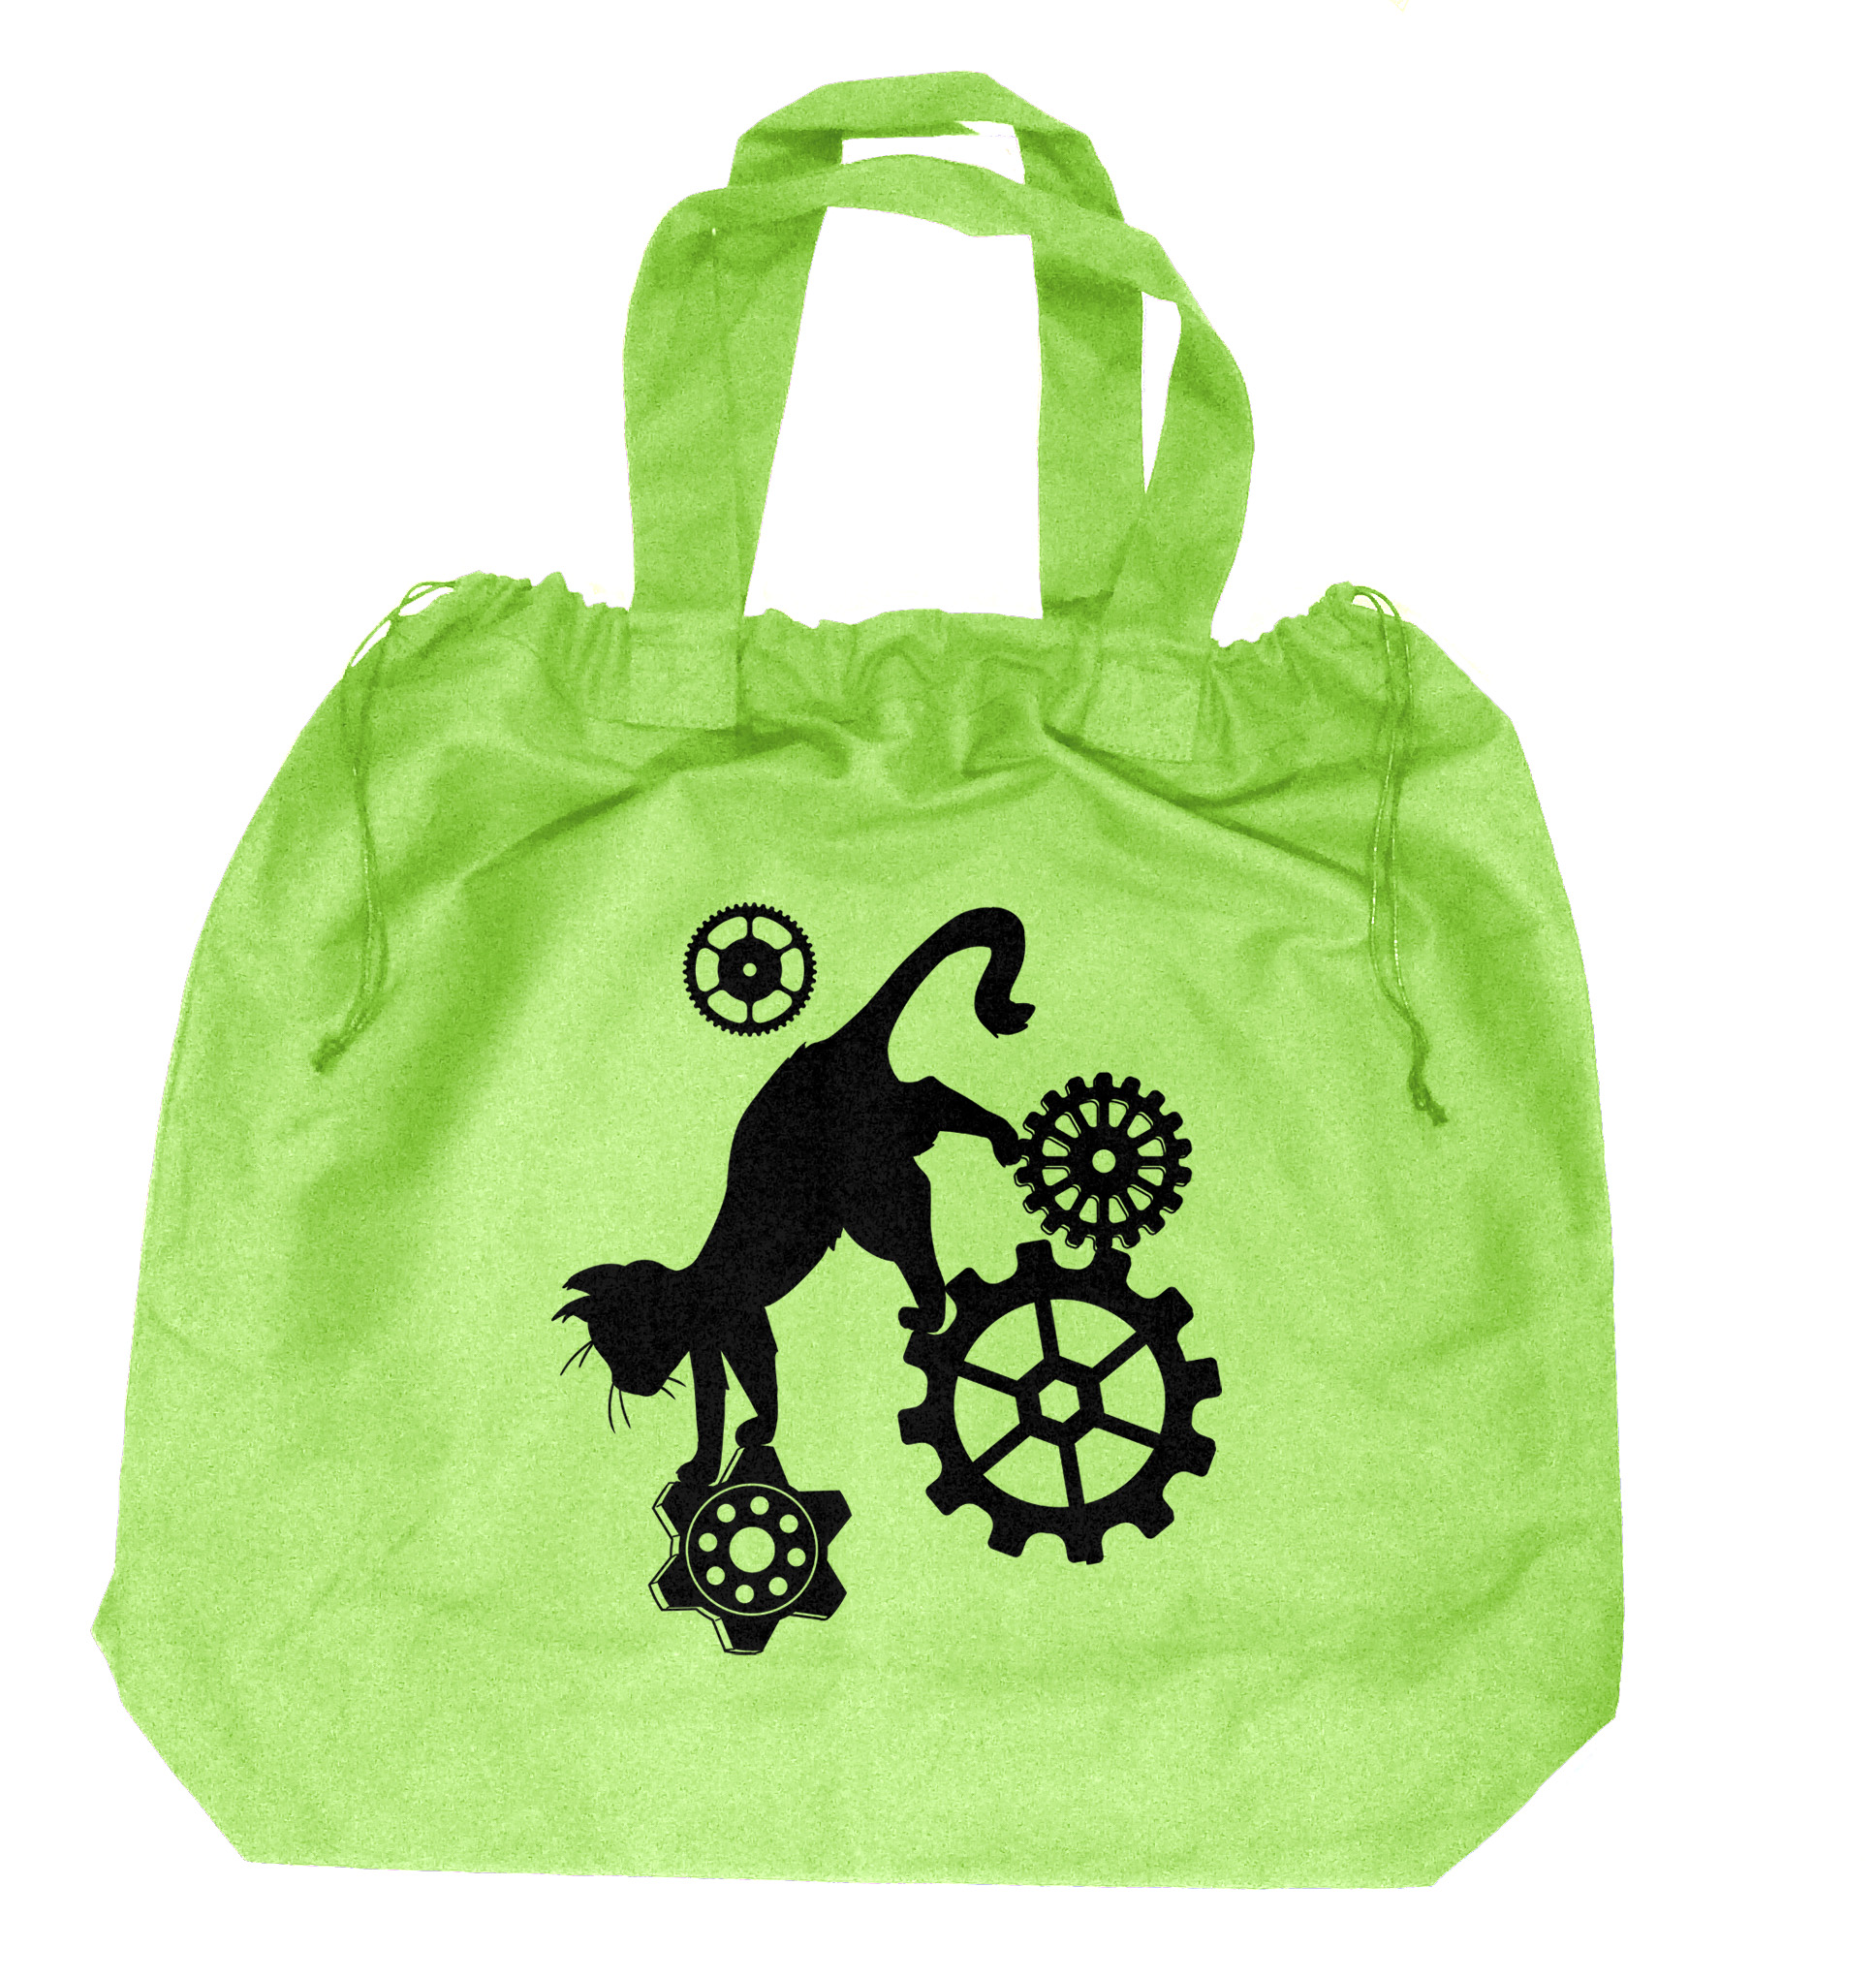 Steampunk Cat Extra-Large Drawstring Beach Bag - Lime Green